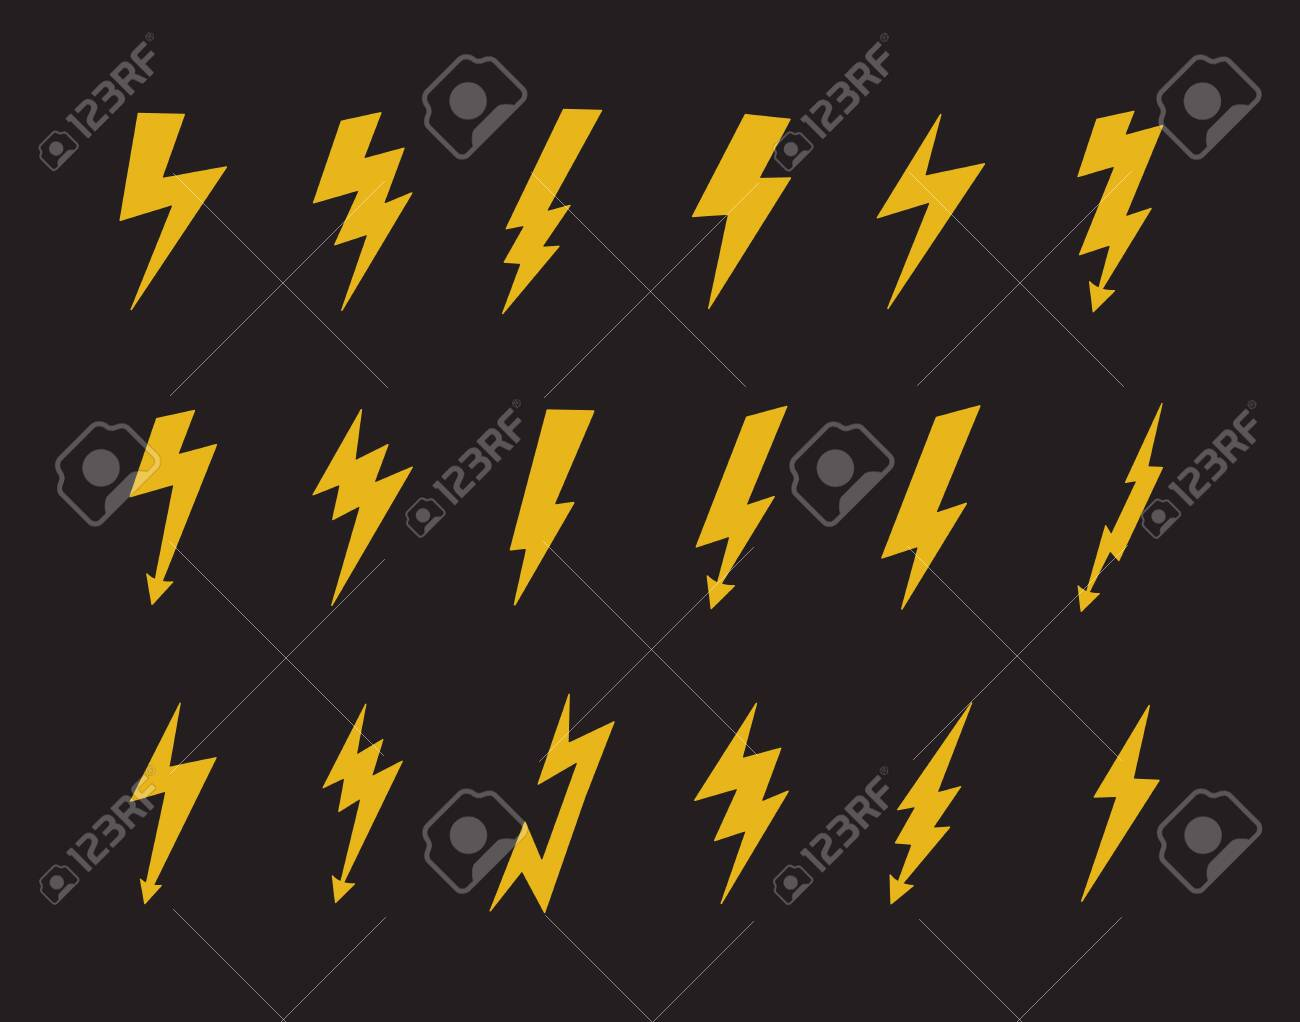 Yellow Electric Lightning Bolt Icon Set Isolated On Black Background Royalty Free Cliparts Vectors And Stock Illustration Image 138068474